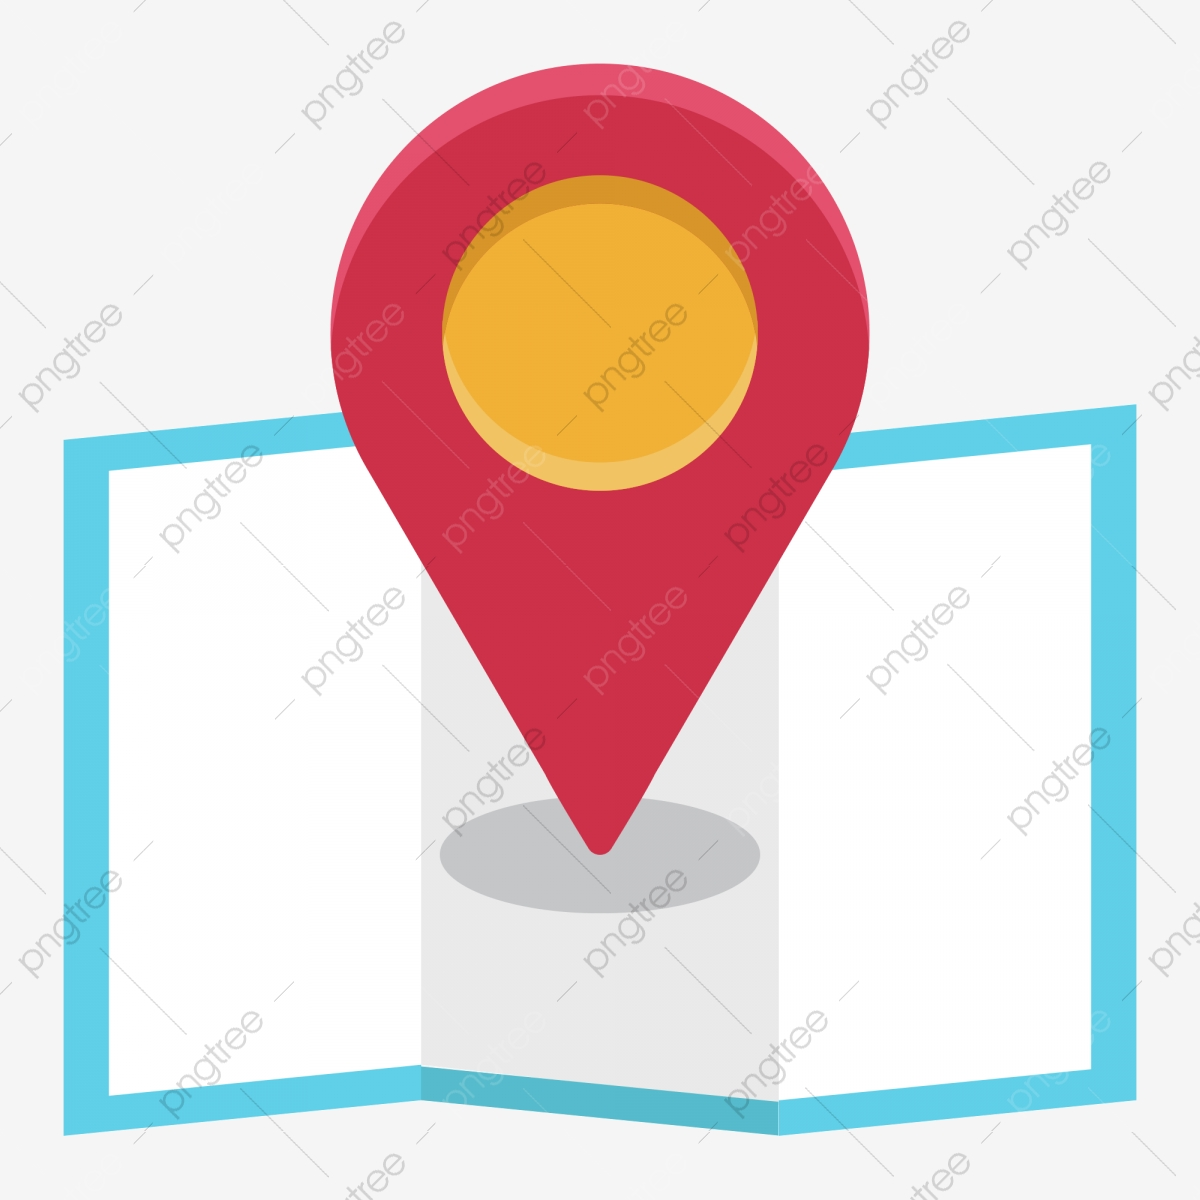 location clipart png images vector and psd files free download on pngtree https pngtree com freepng cartoon positioning icon on the map 4402396 html